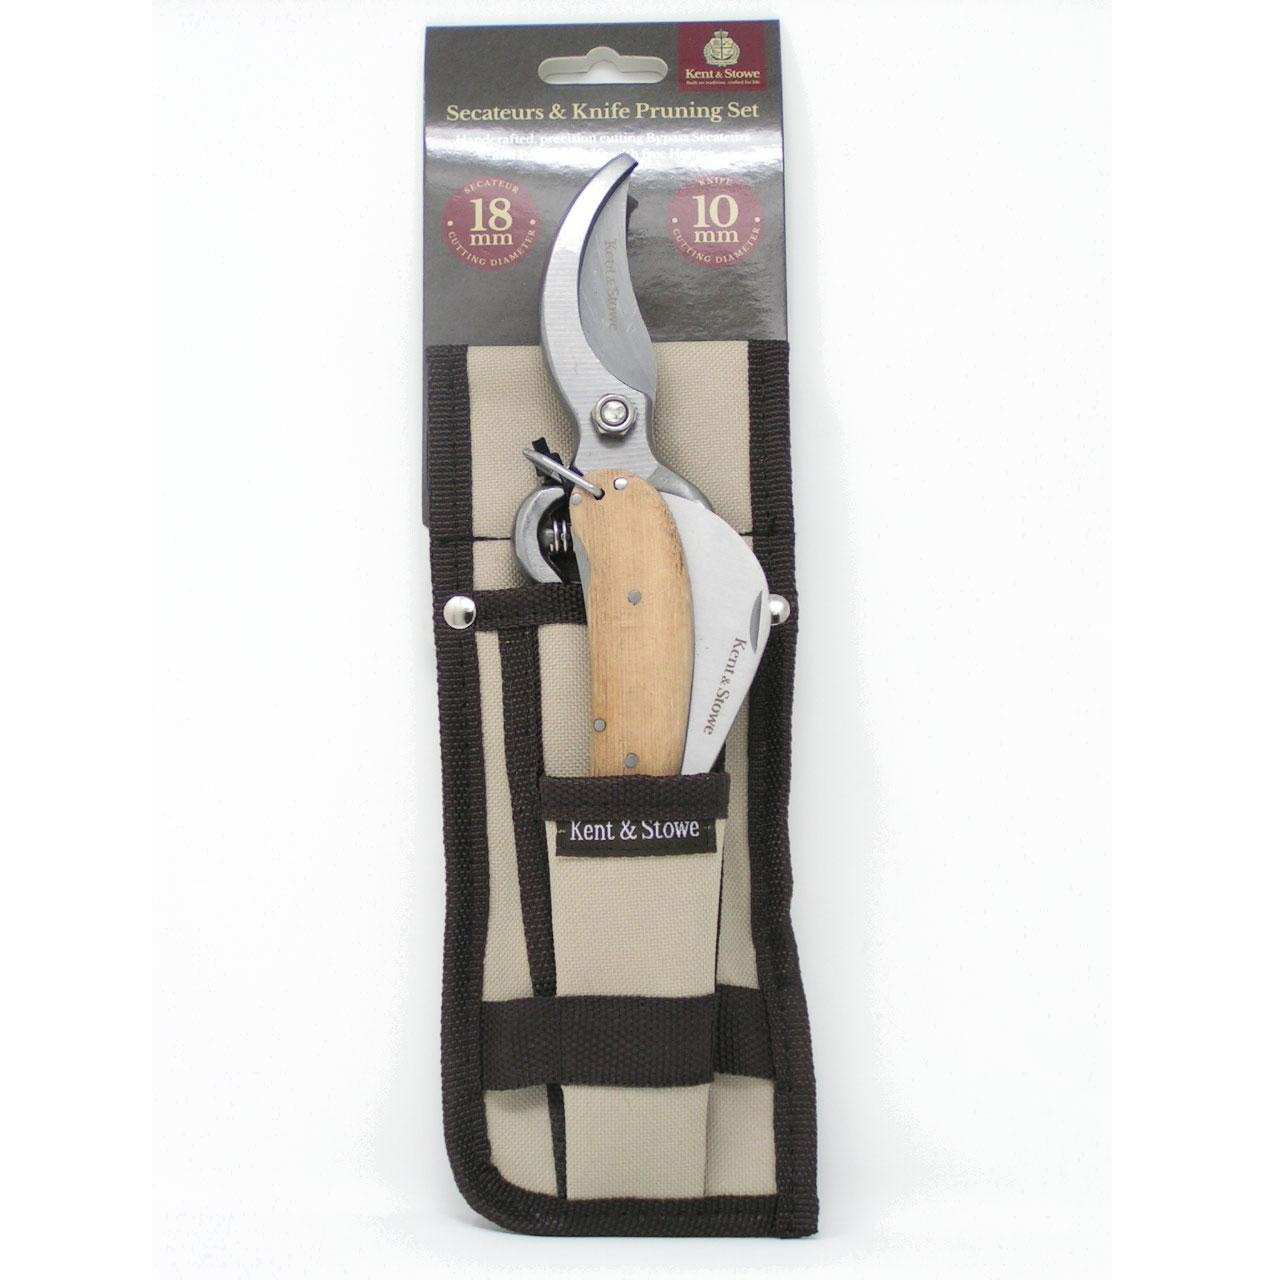 Kent & Stowe Secateurs & Knife Pruning Set